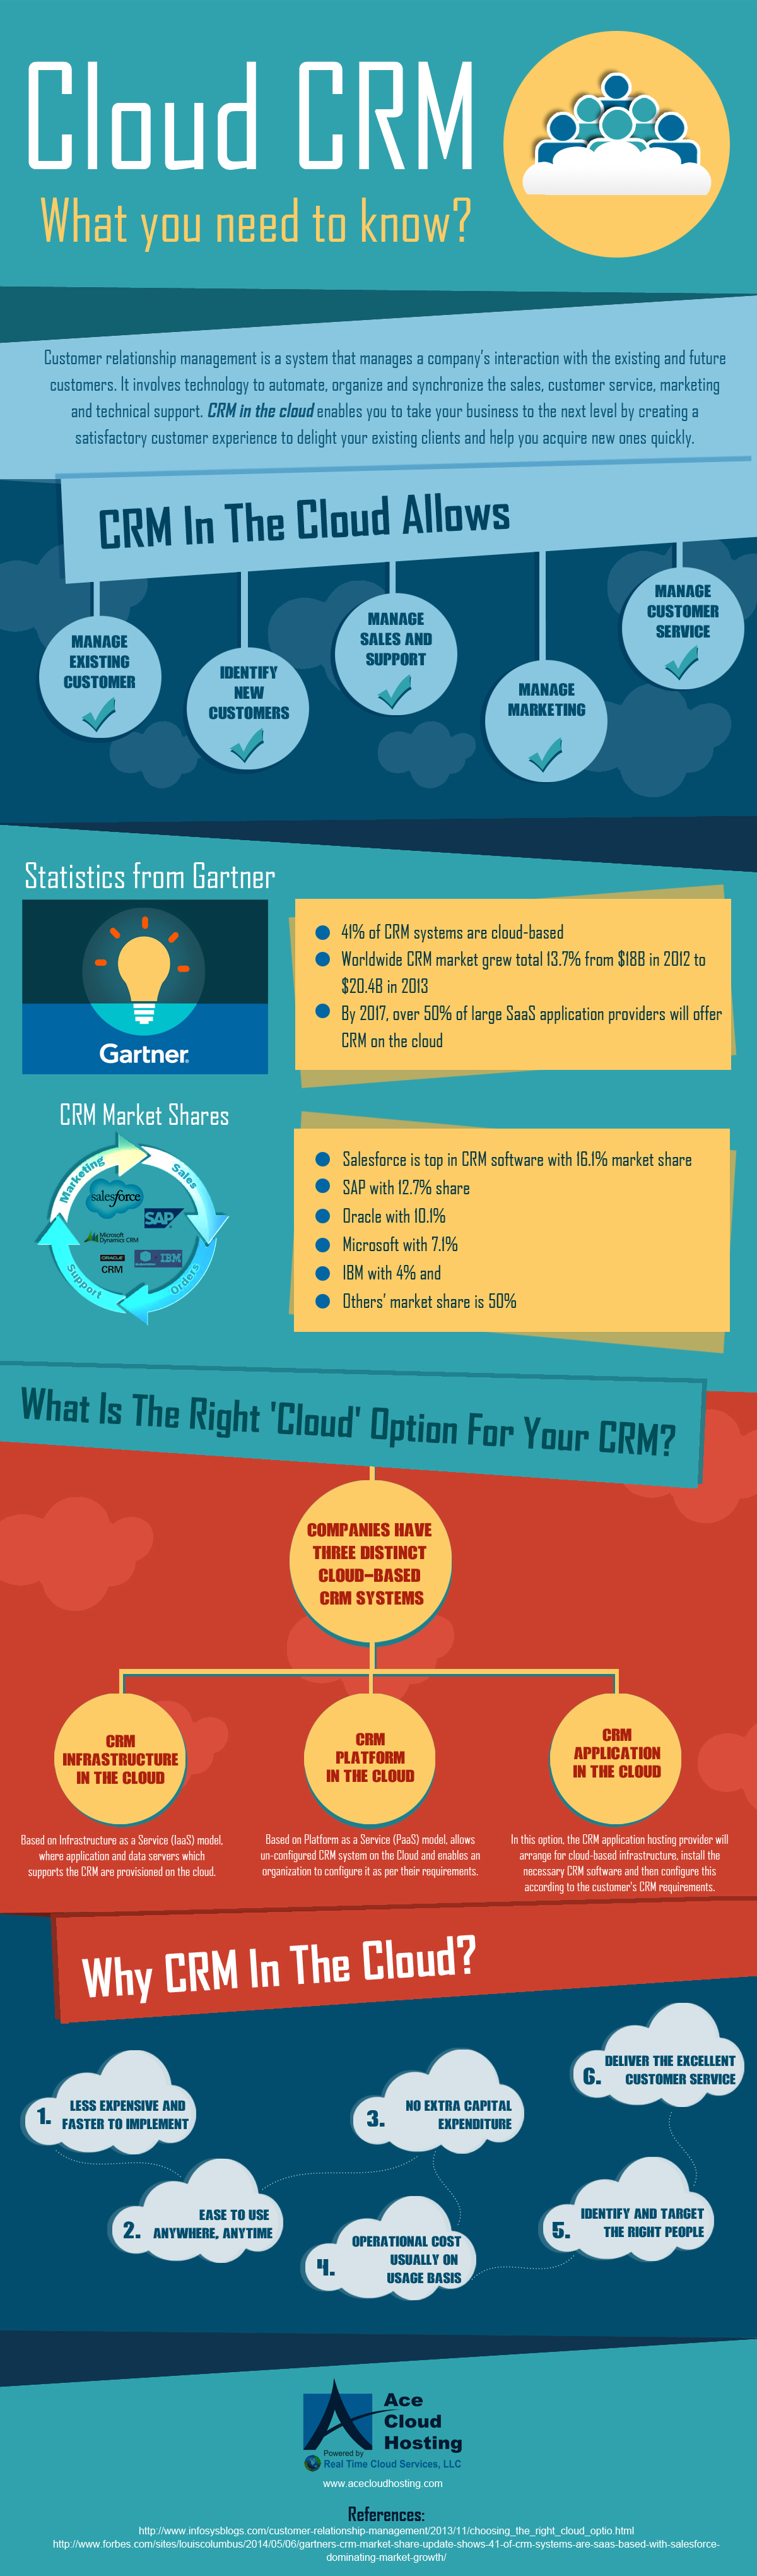 Cloud CRM – What you need to know2(1)